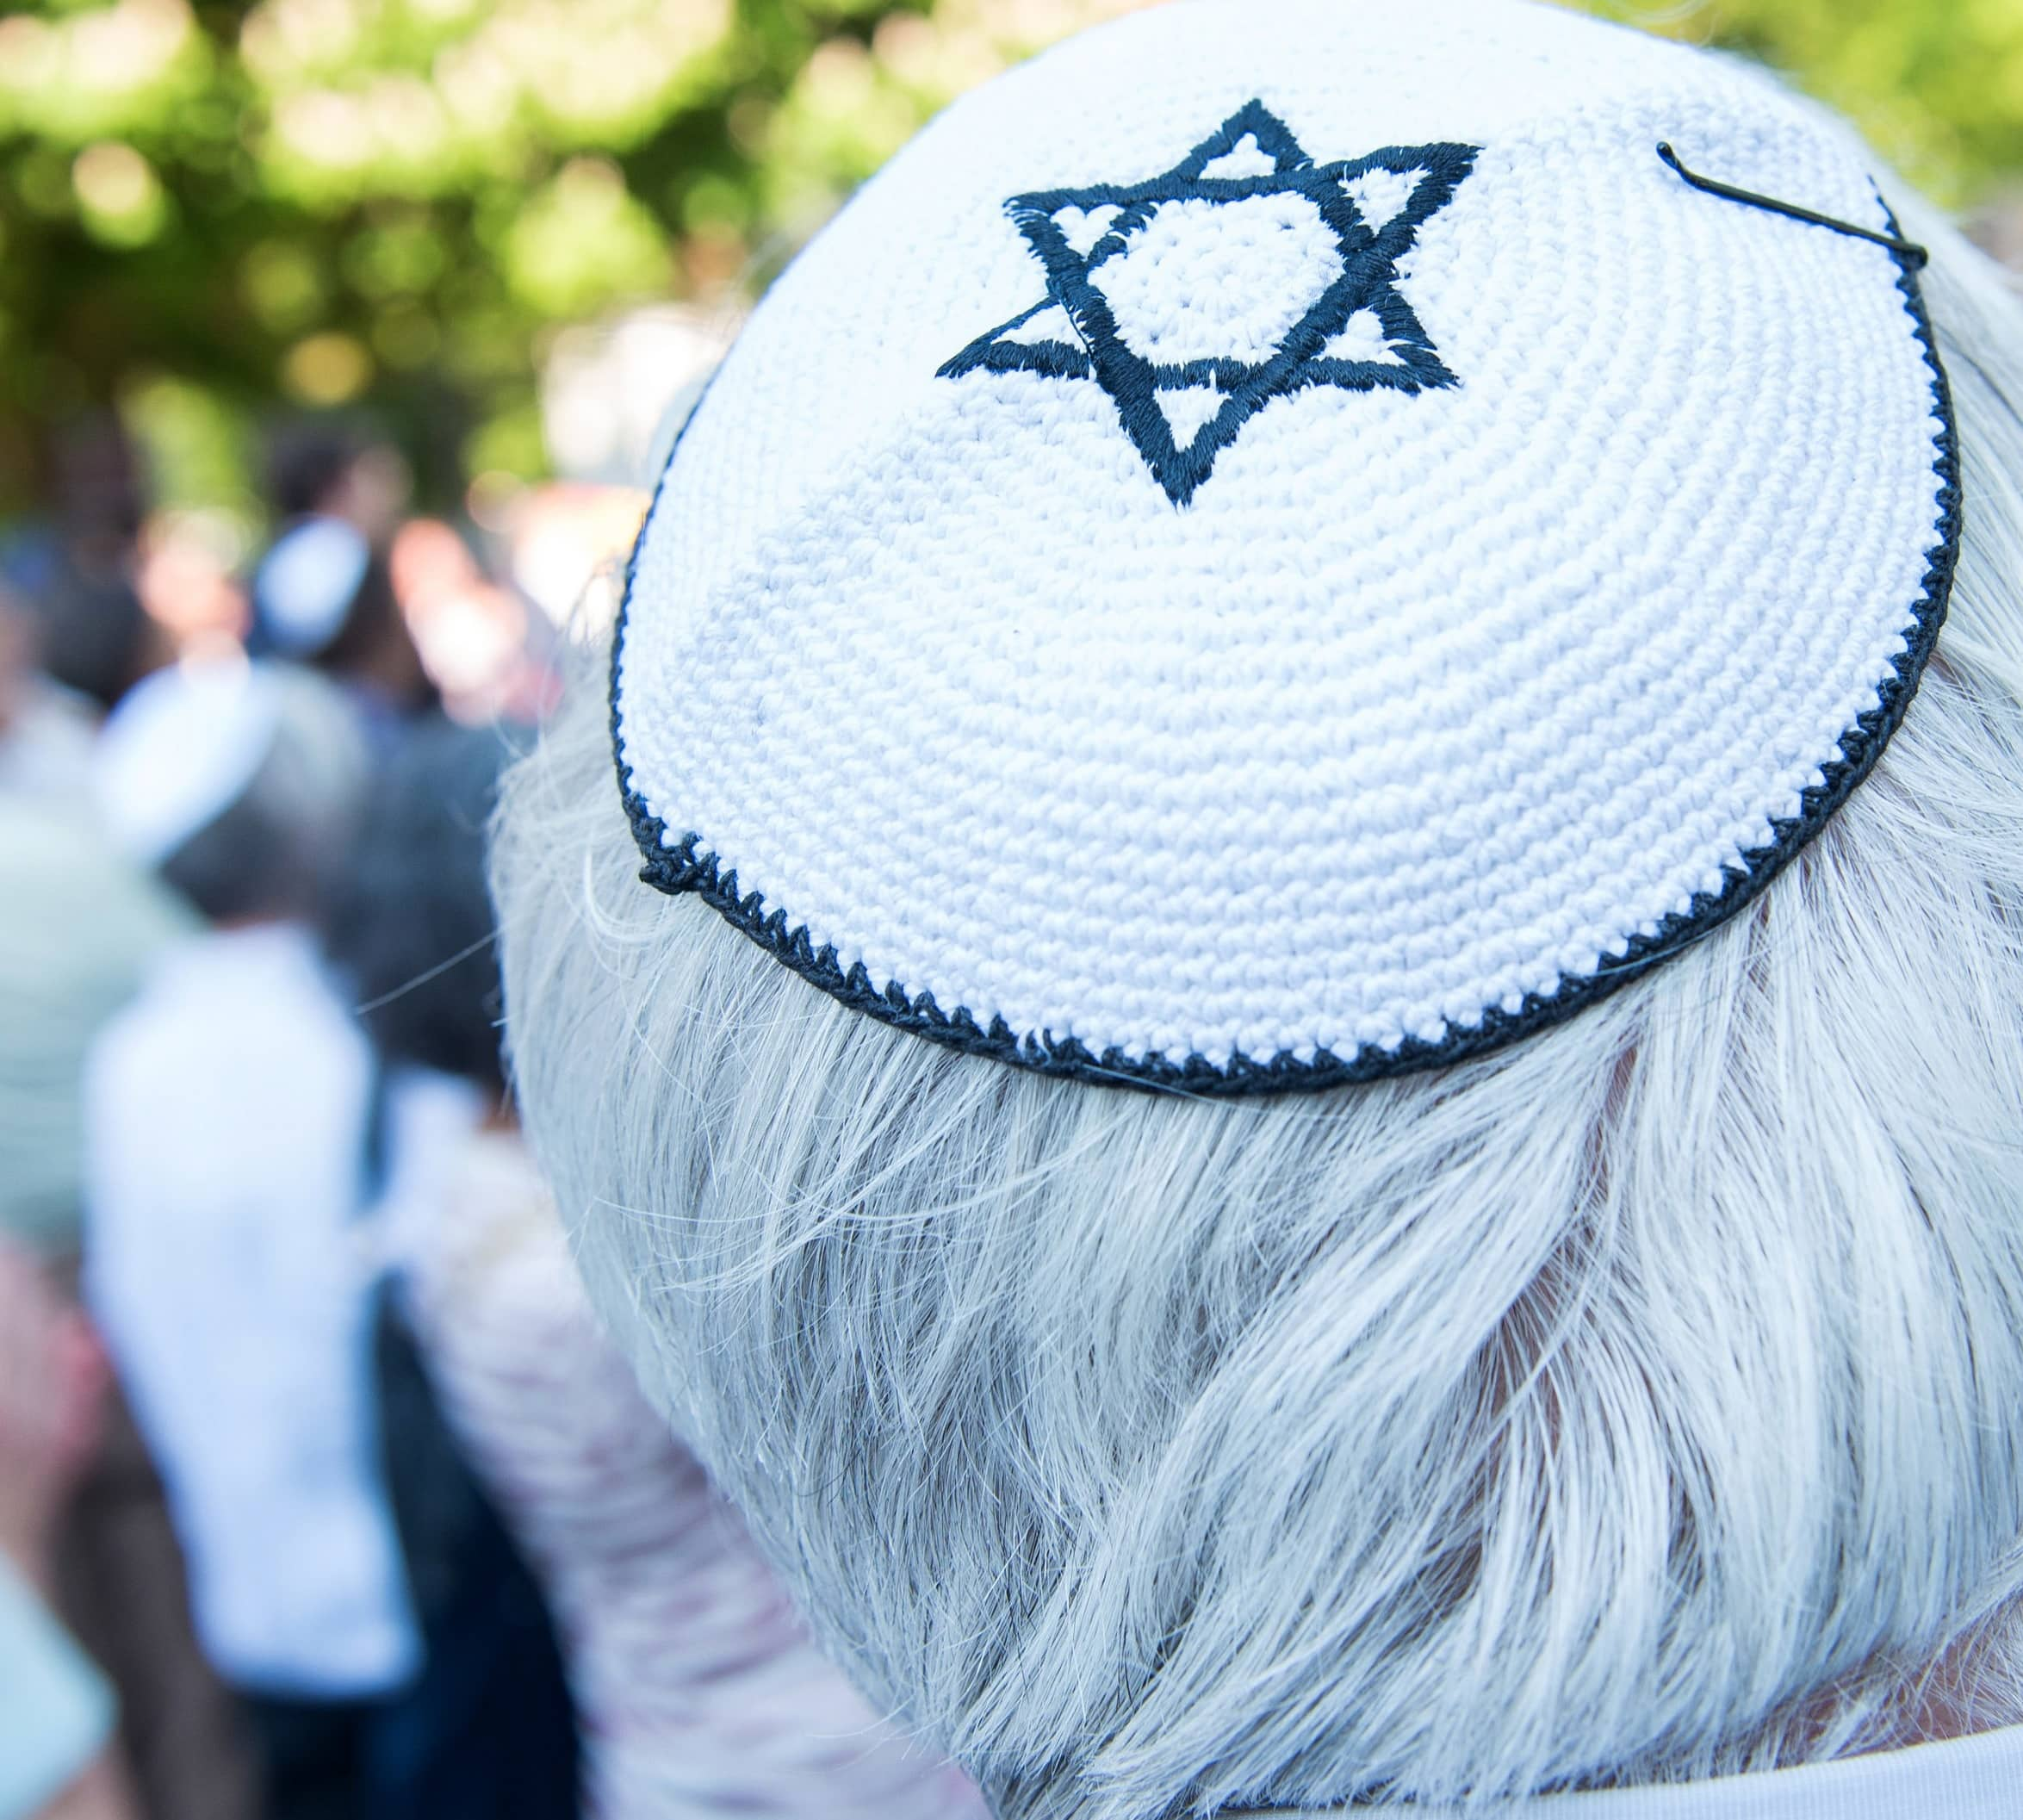 SCIENTISTS COMBAT ANTISEMITISM WITH ARTIFICIAL INTELLIGENCE